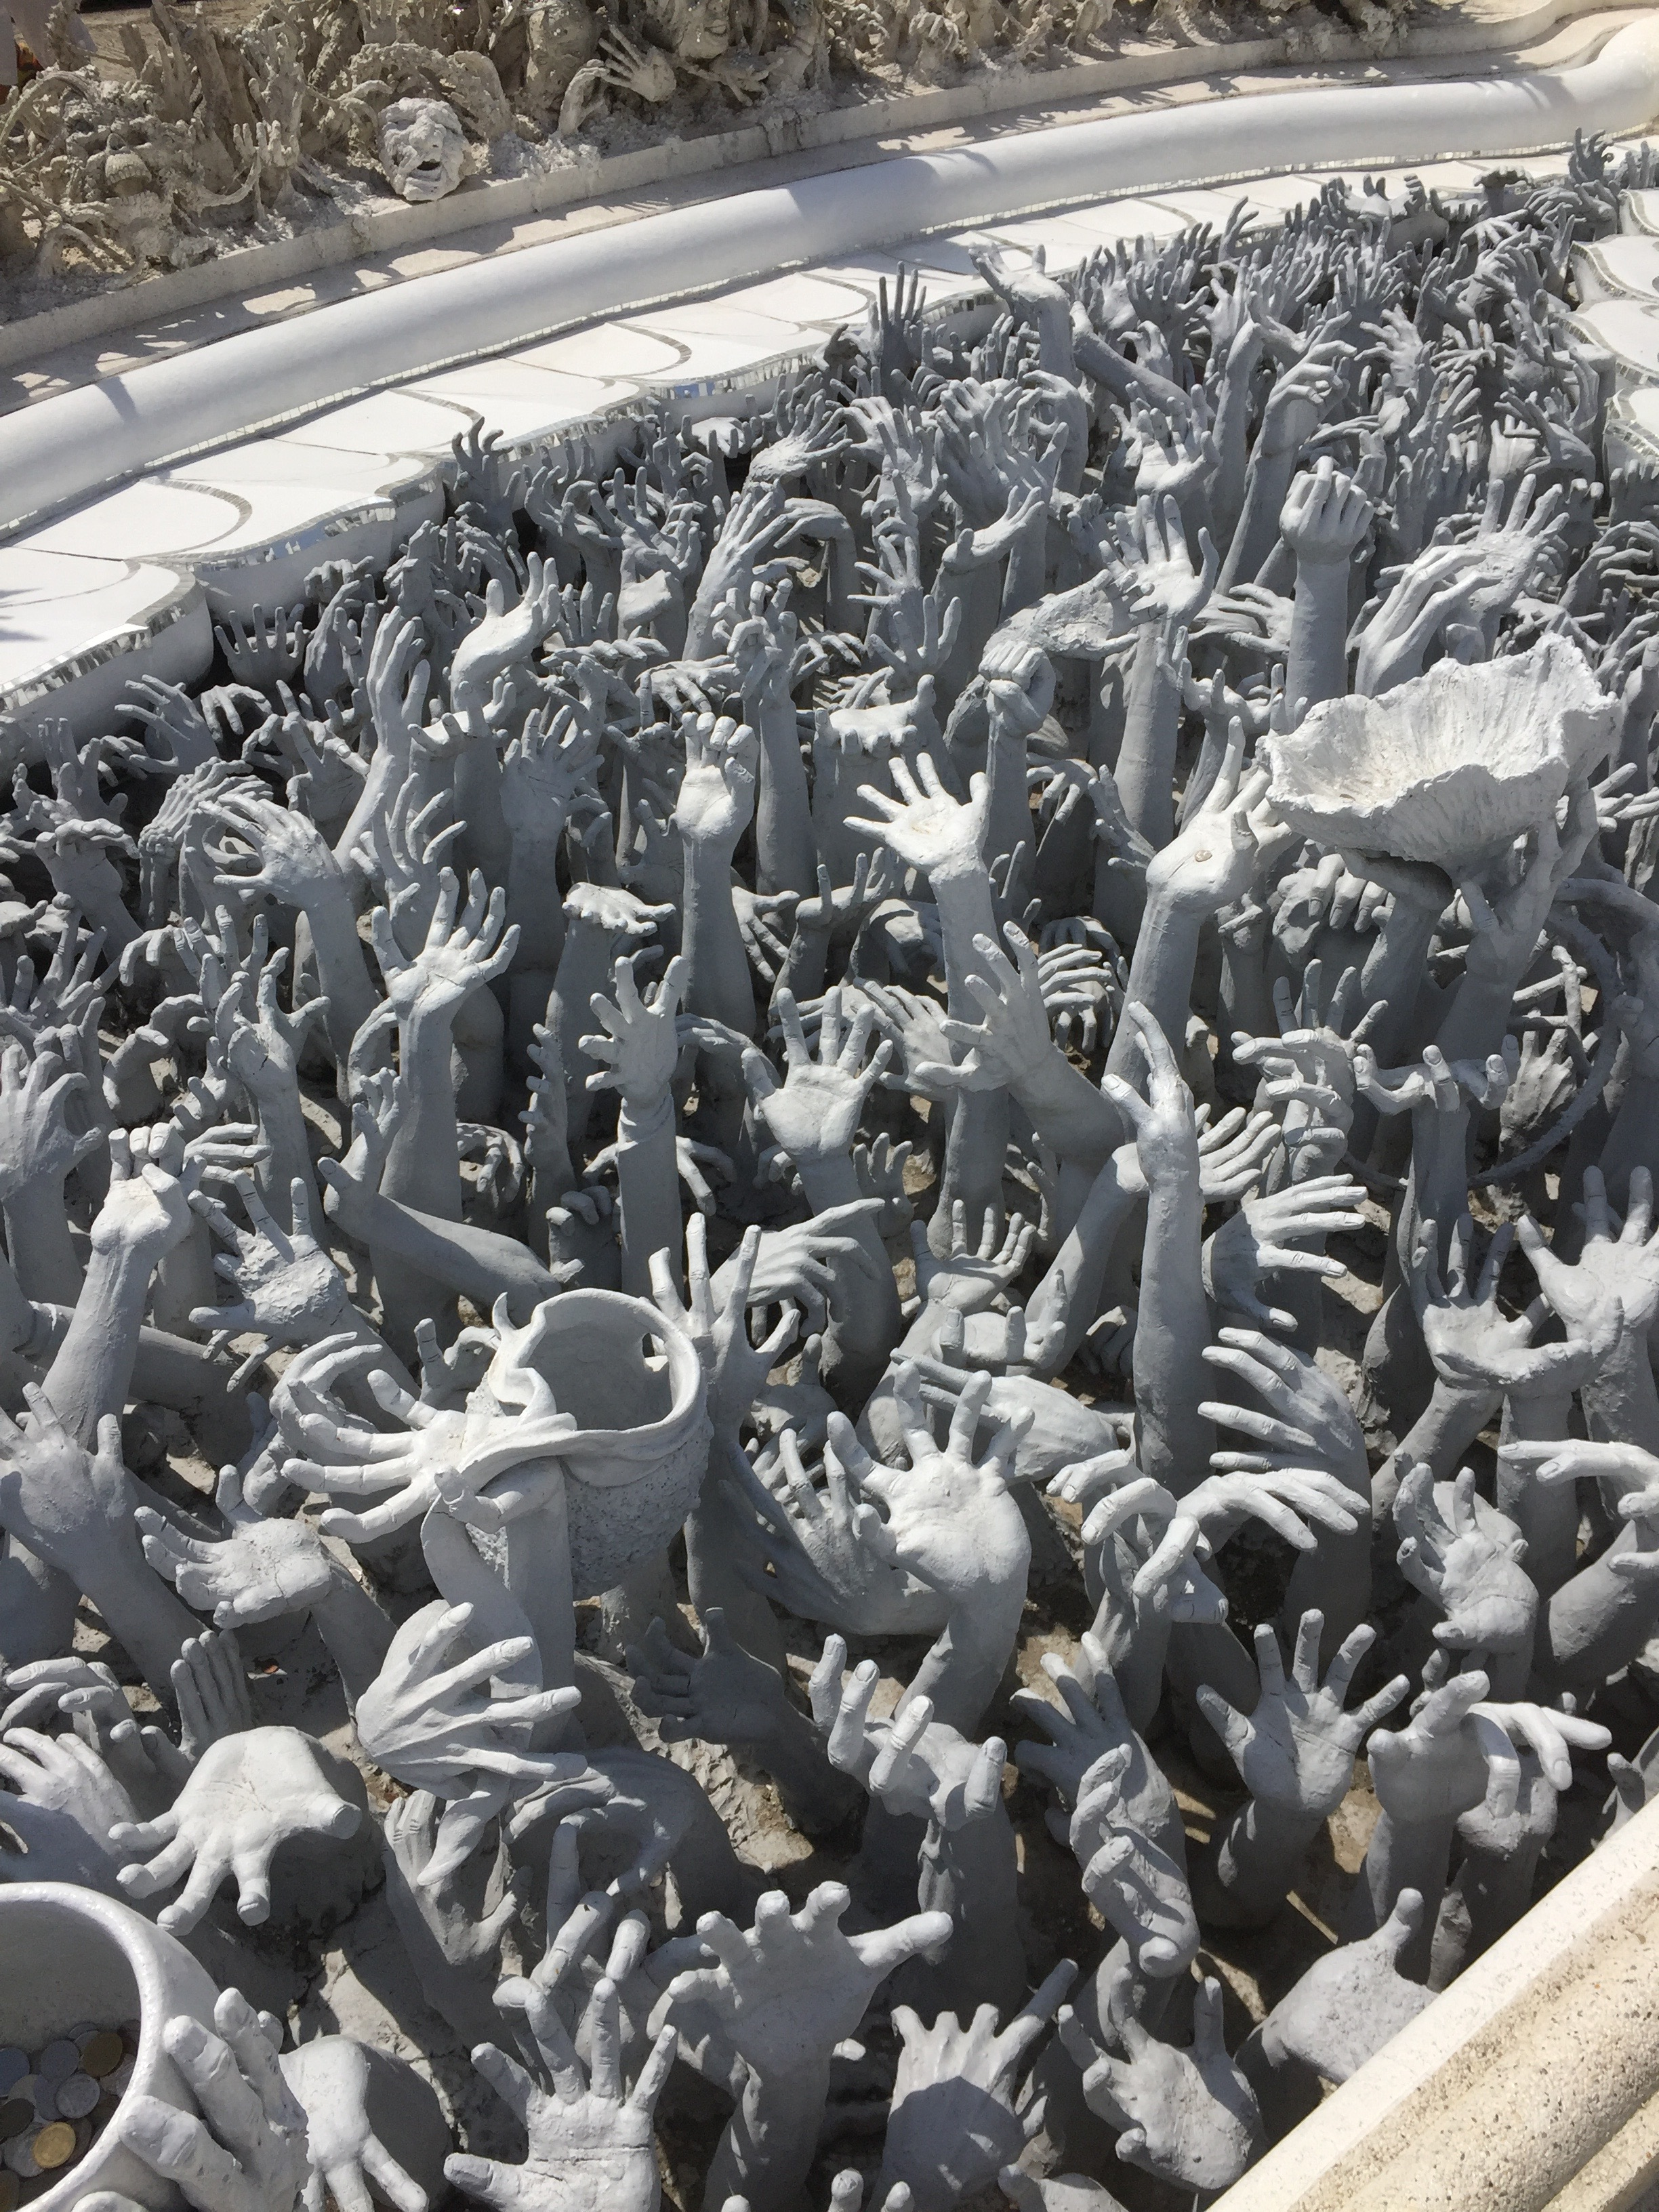 Parting shot of Thailand...a sculpture outside of the White Temple in Chang Rai, seeking donations to the venue.